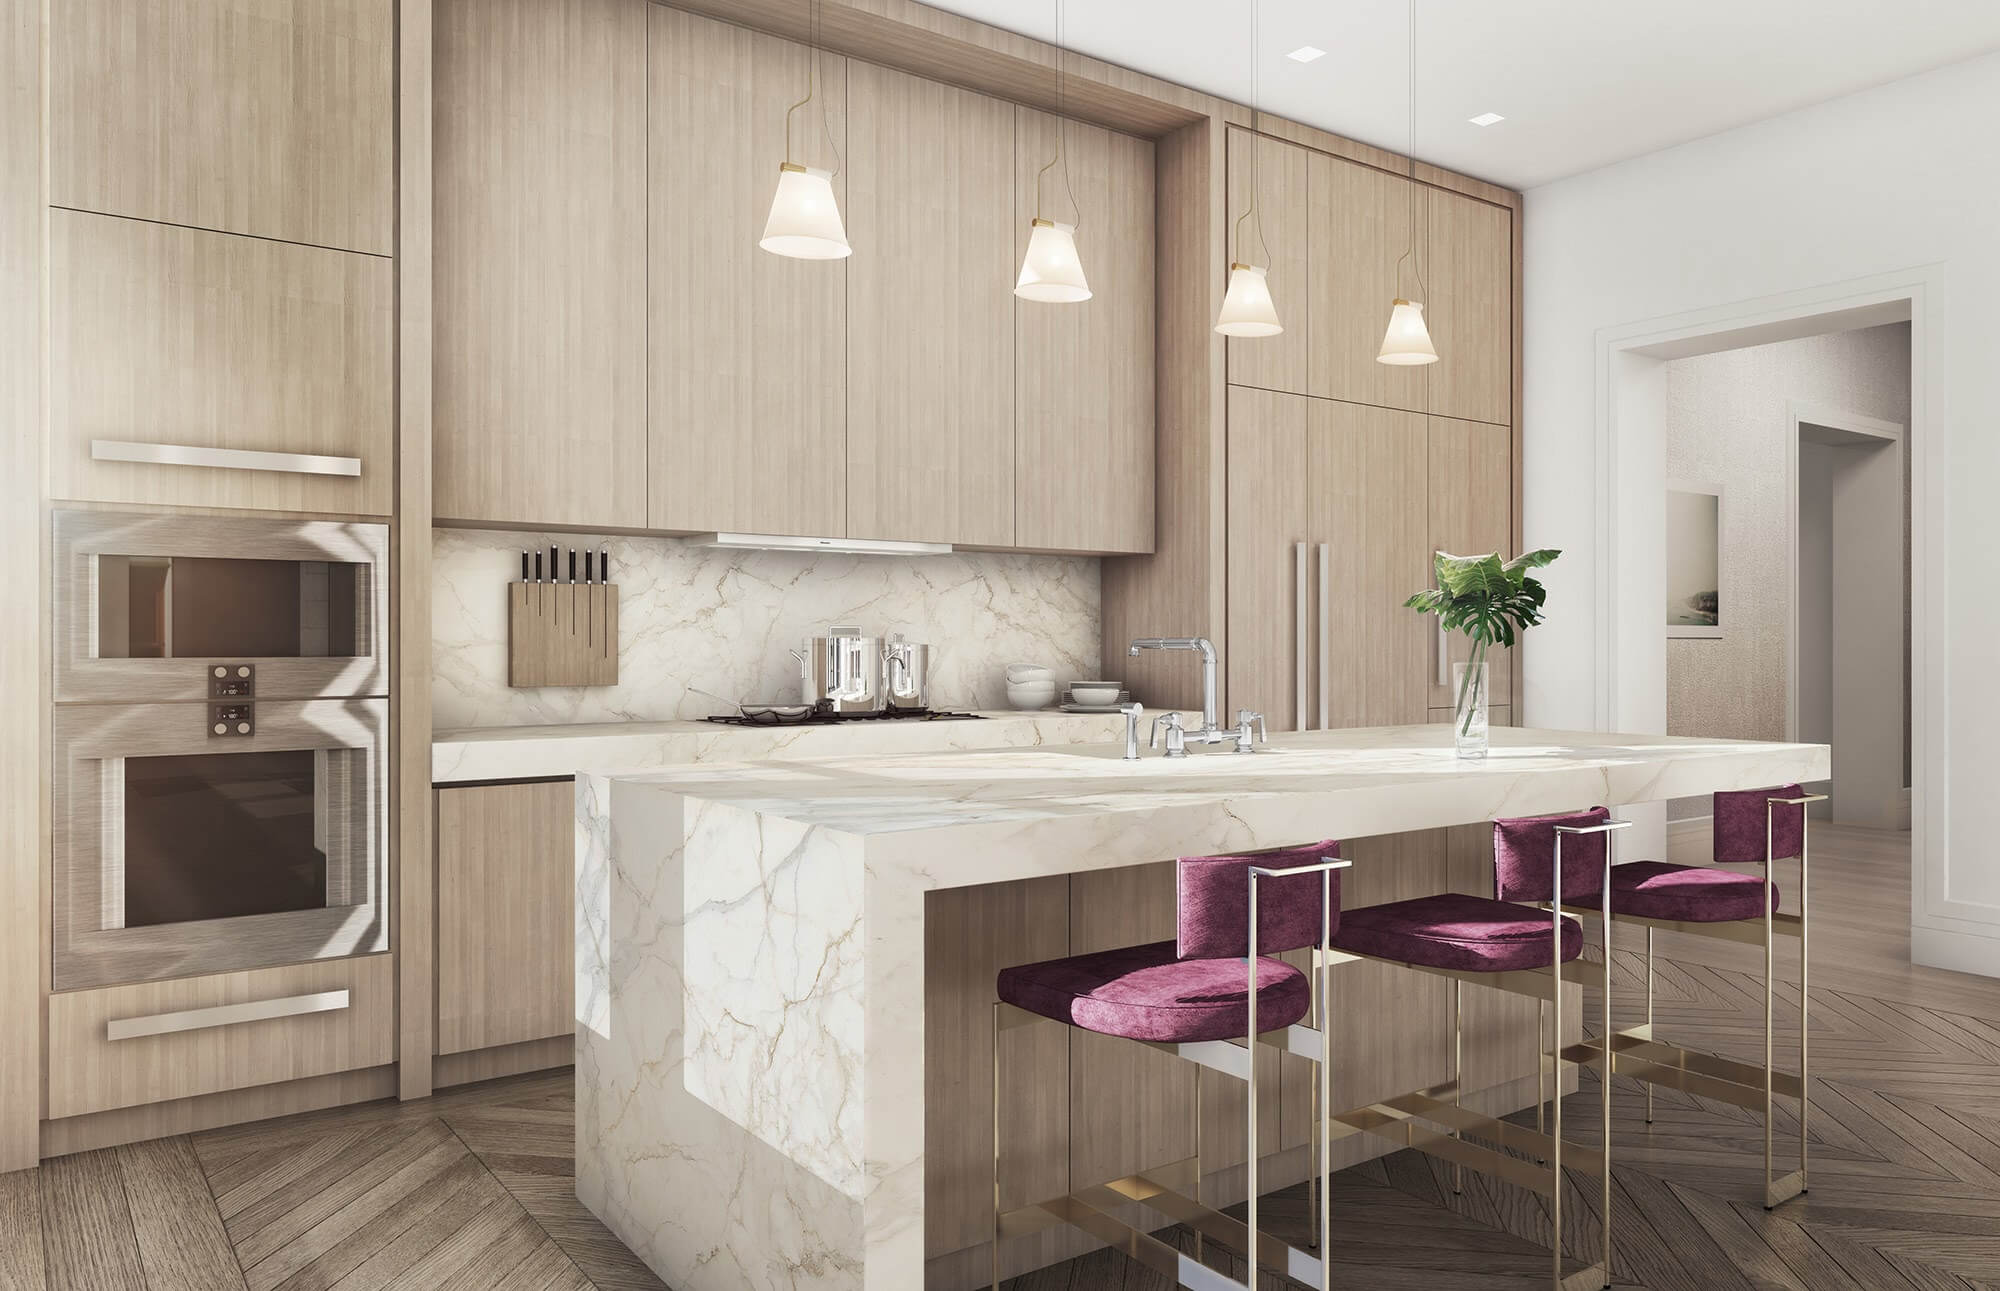 Madison-Equities_212-Fifth-Ave_Luxury-Residential-Kitchen